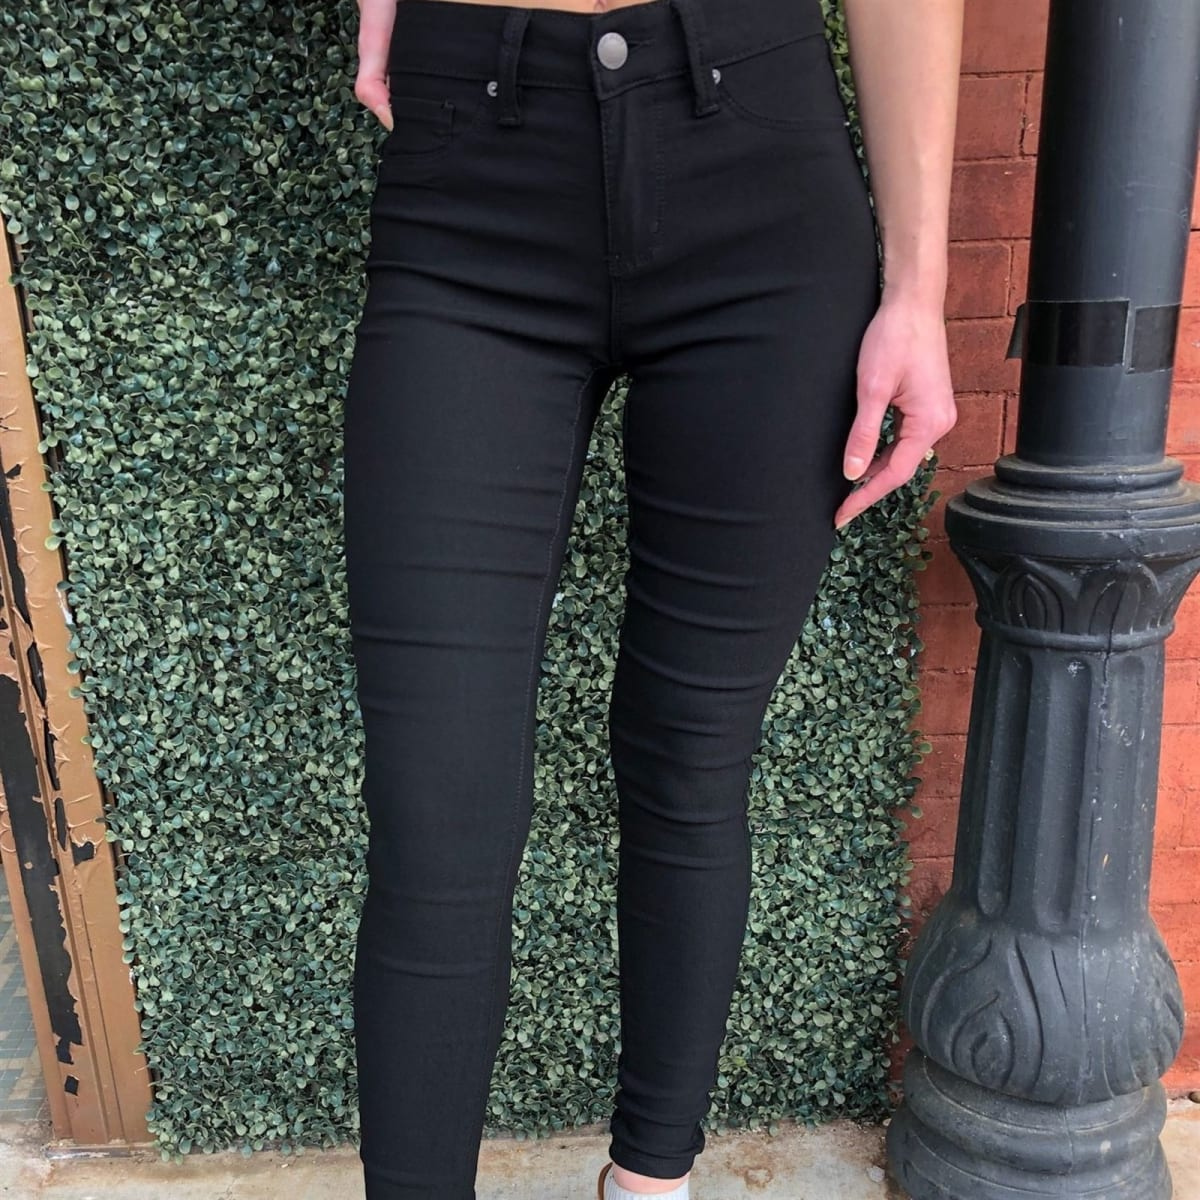 .99 Perfect Stretch Uniform Jeggings   S-2X at Jane!